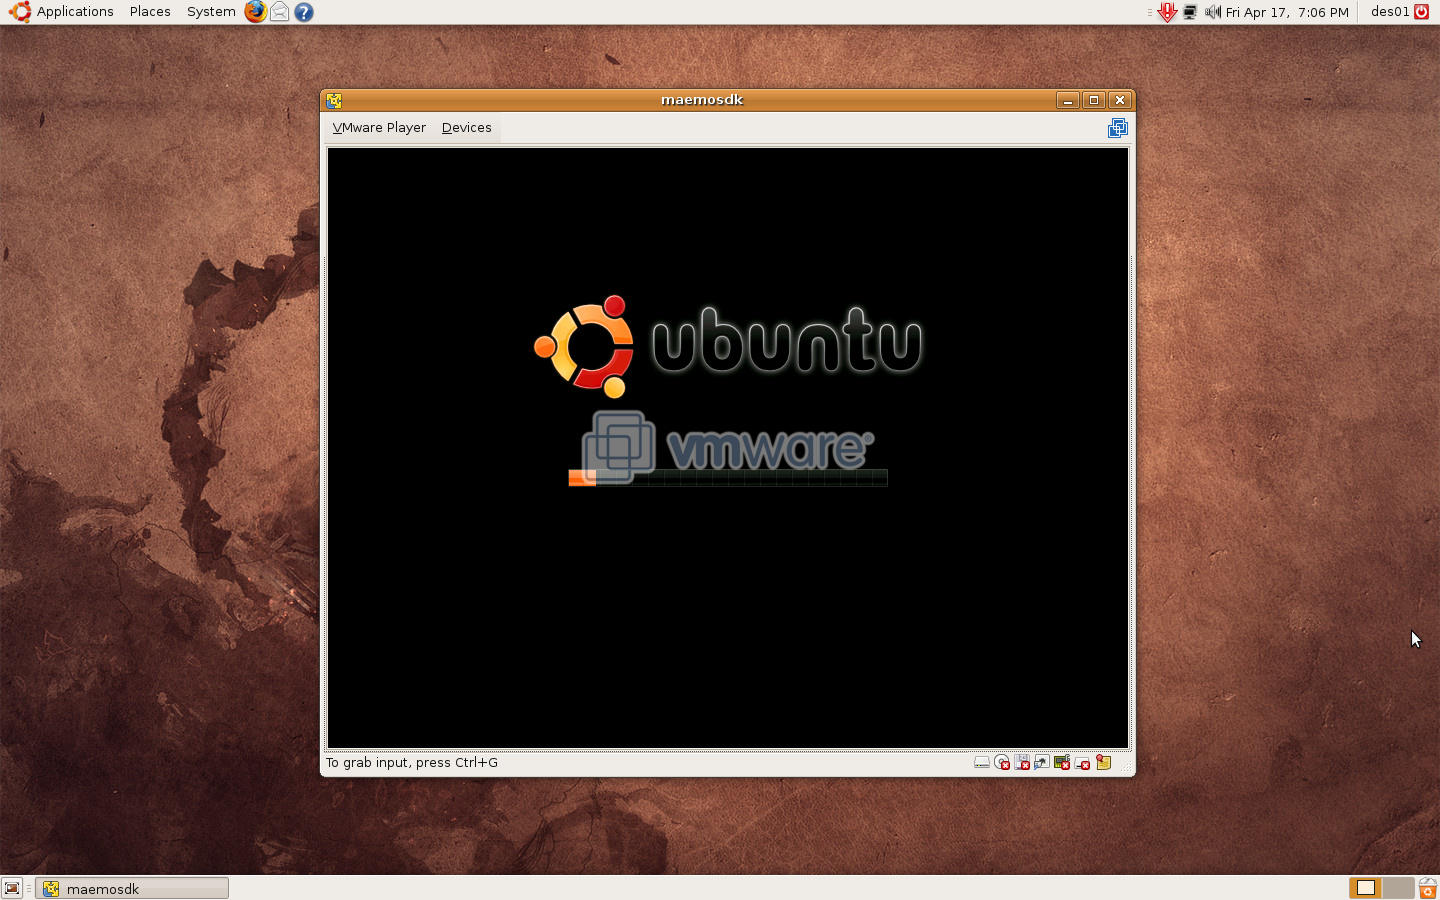 vmware linux free